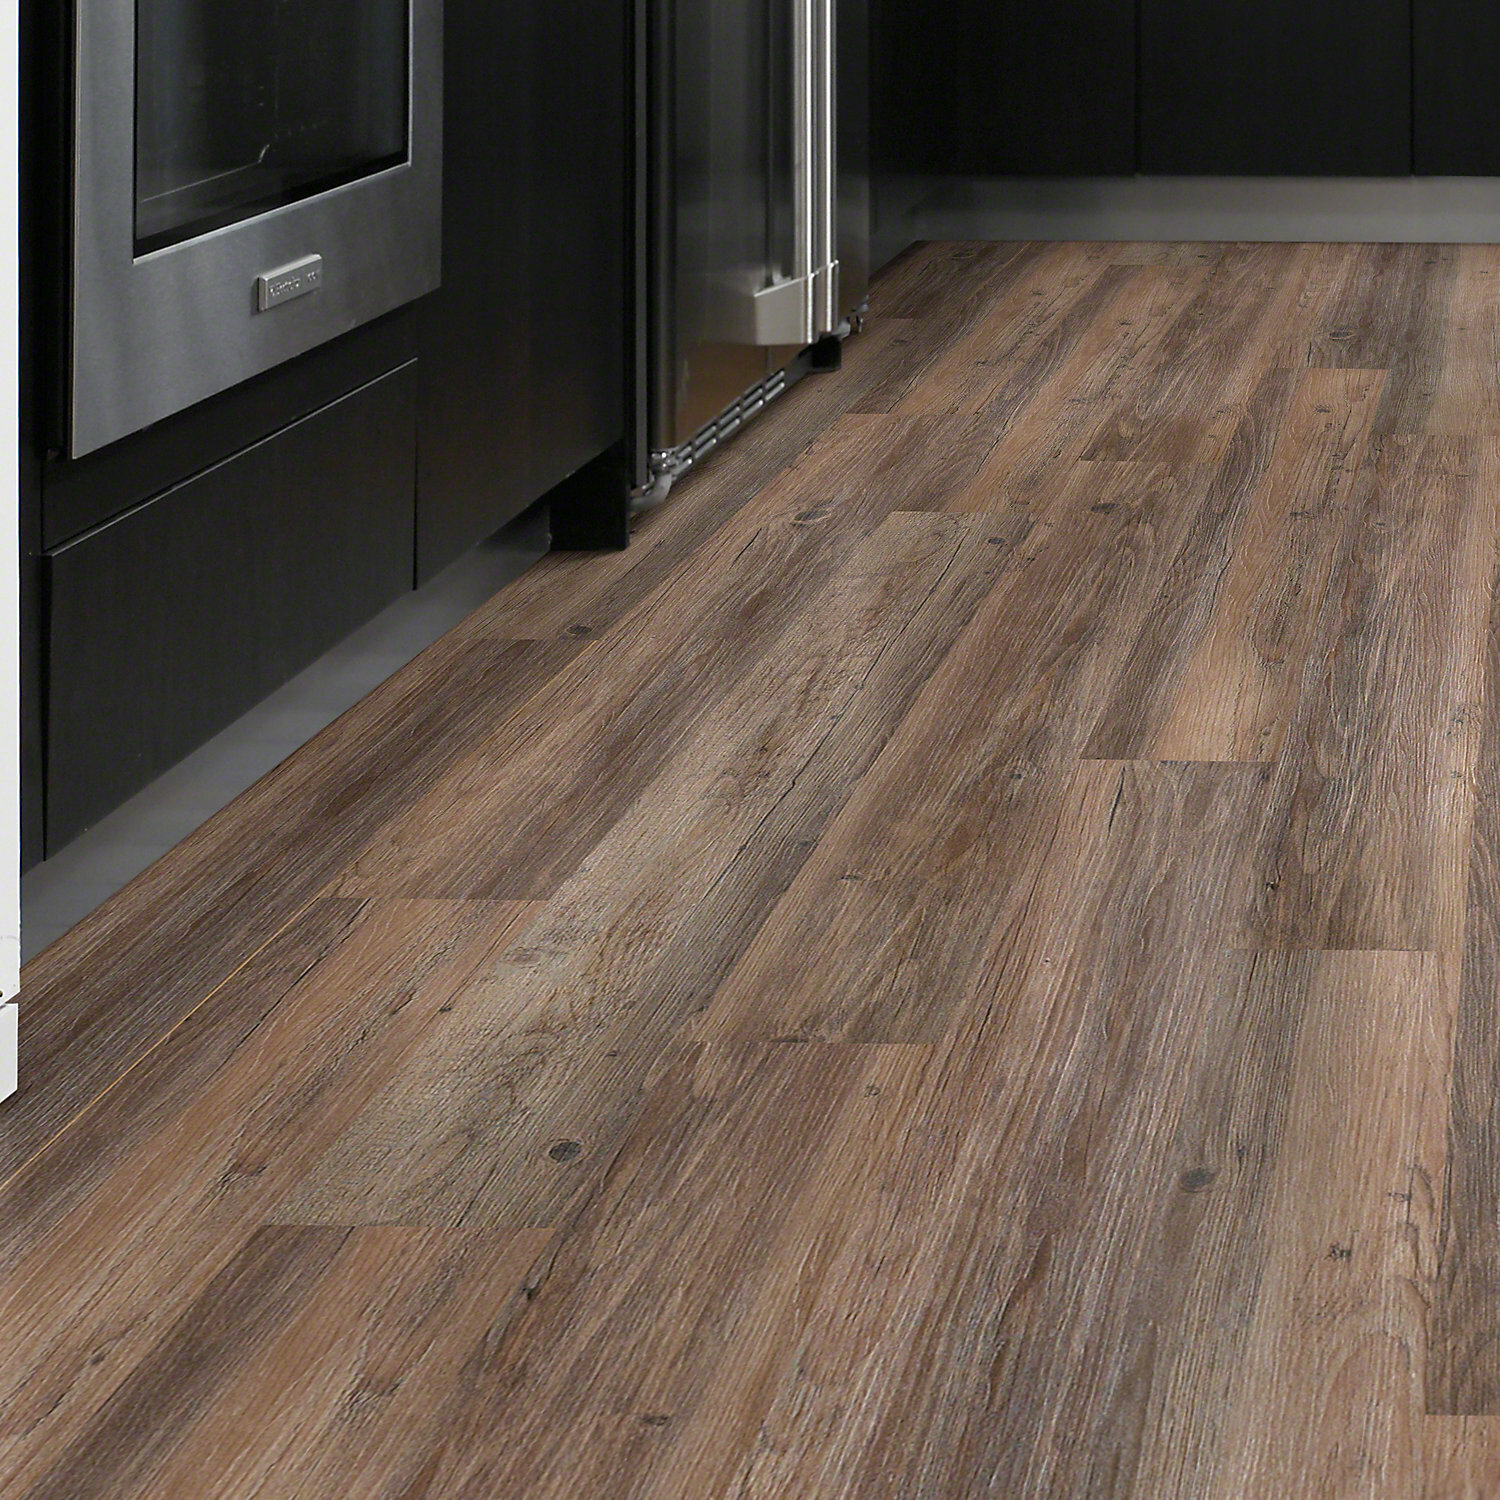 Shaw Floors Arlington 6 X 48 2mm